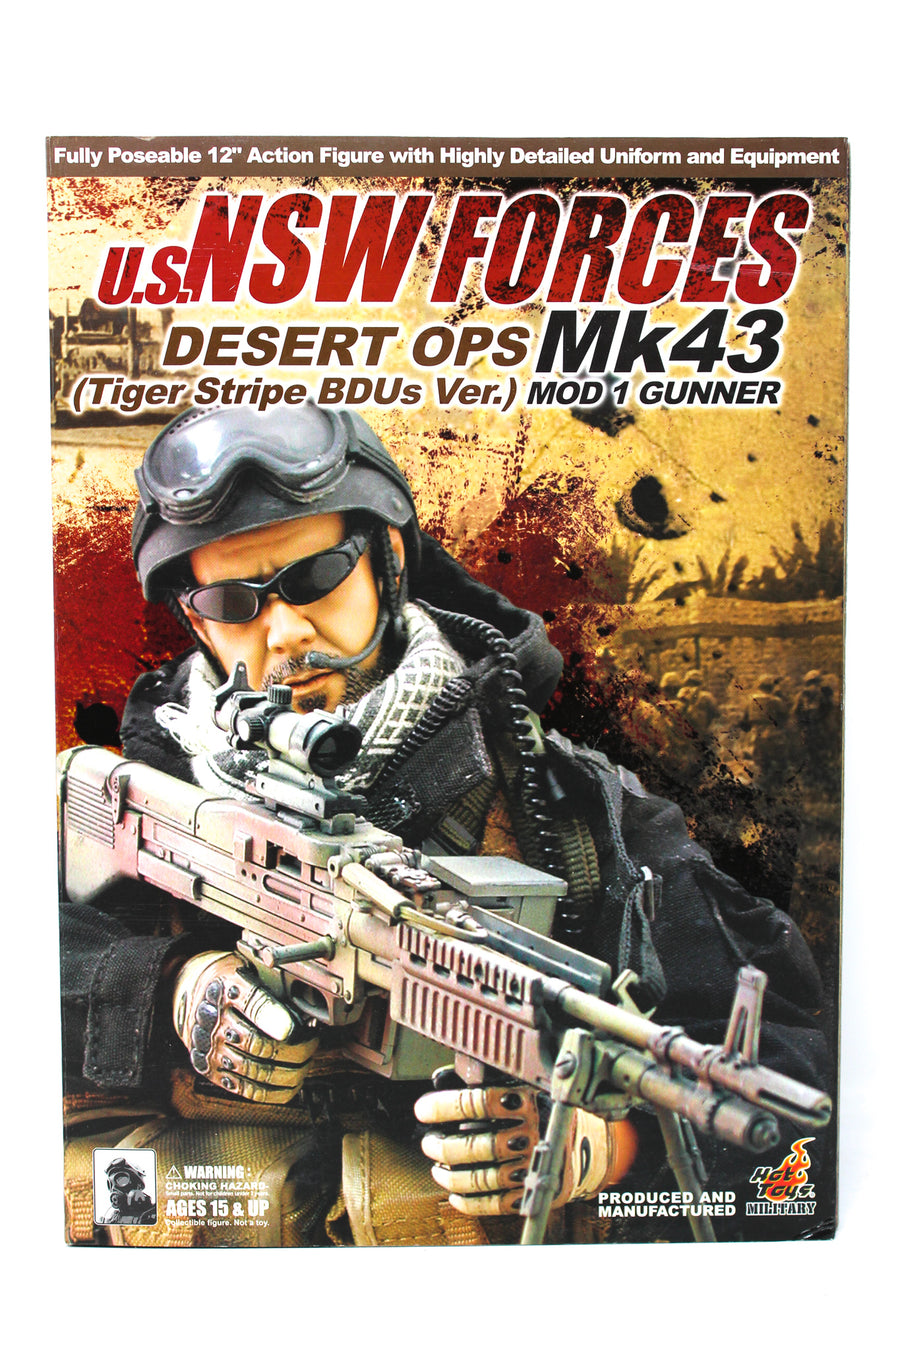 NSW Forces - Desert Ops - White & Black Shemagh